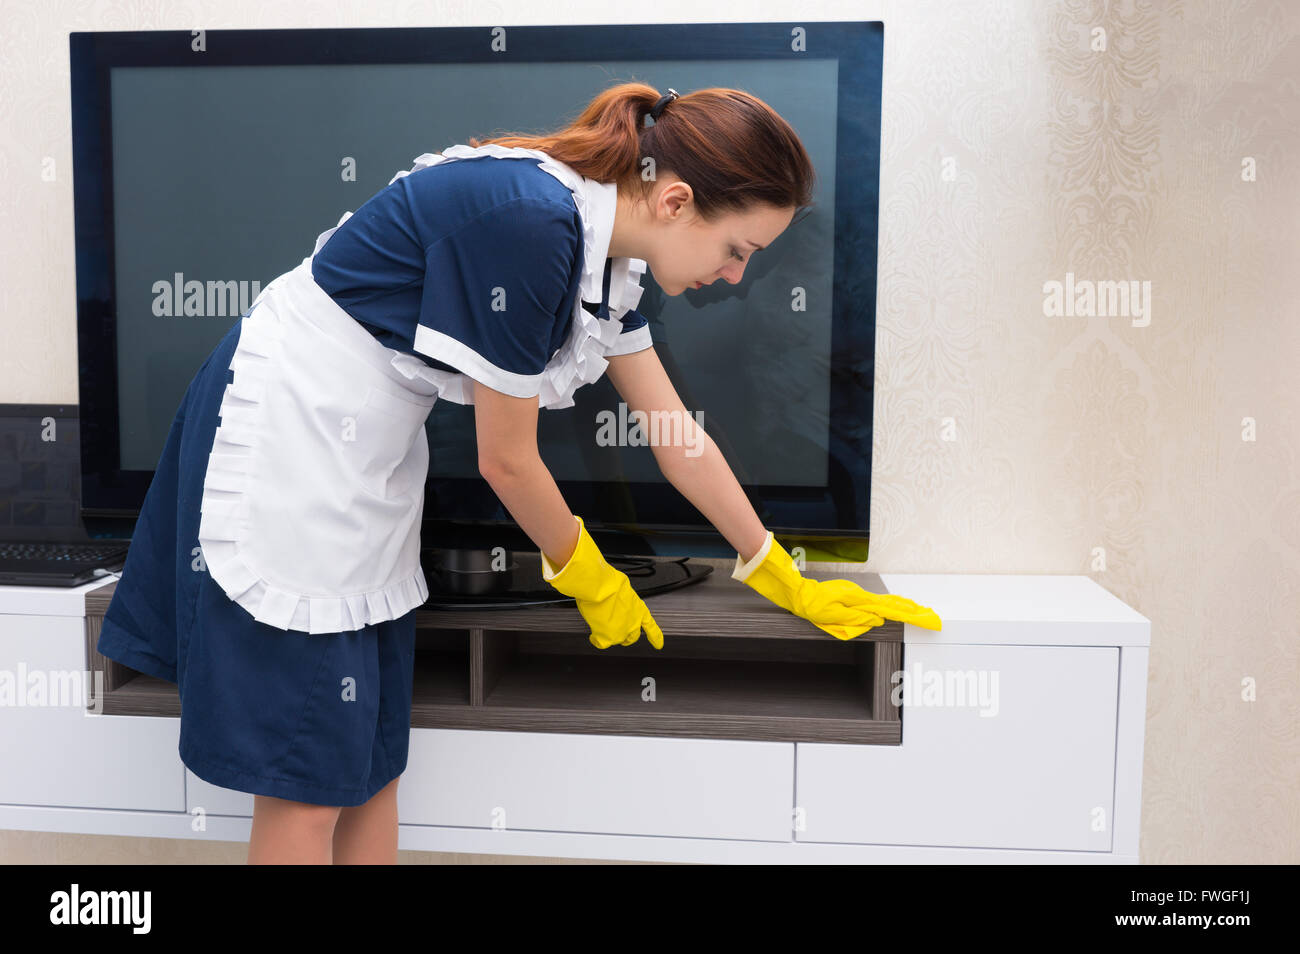 Housekeeper, maid or char in a neat uniform and white apron dusting a television and cabinet in a home or hotel - Stock Image